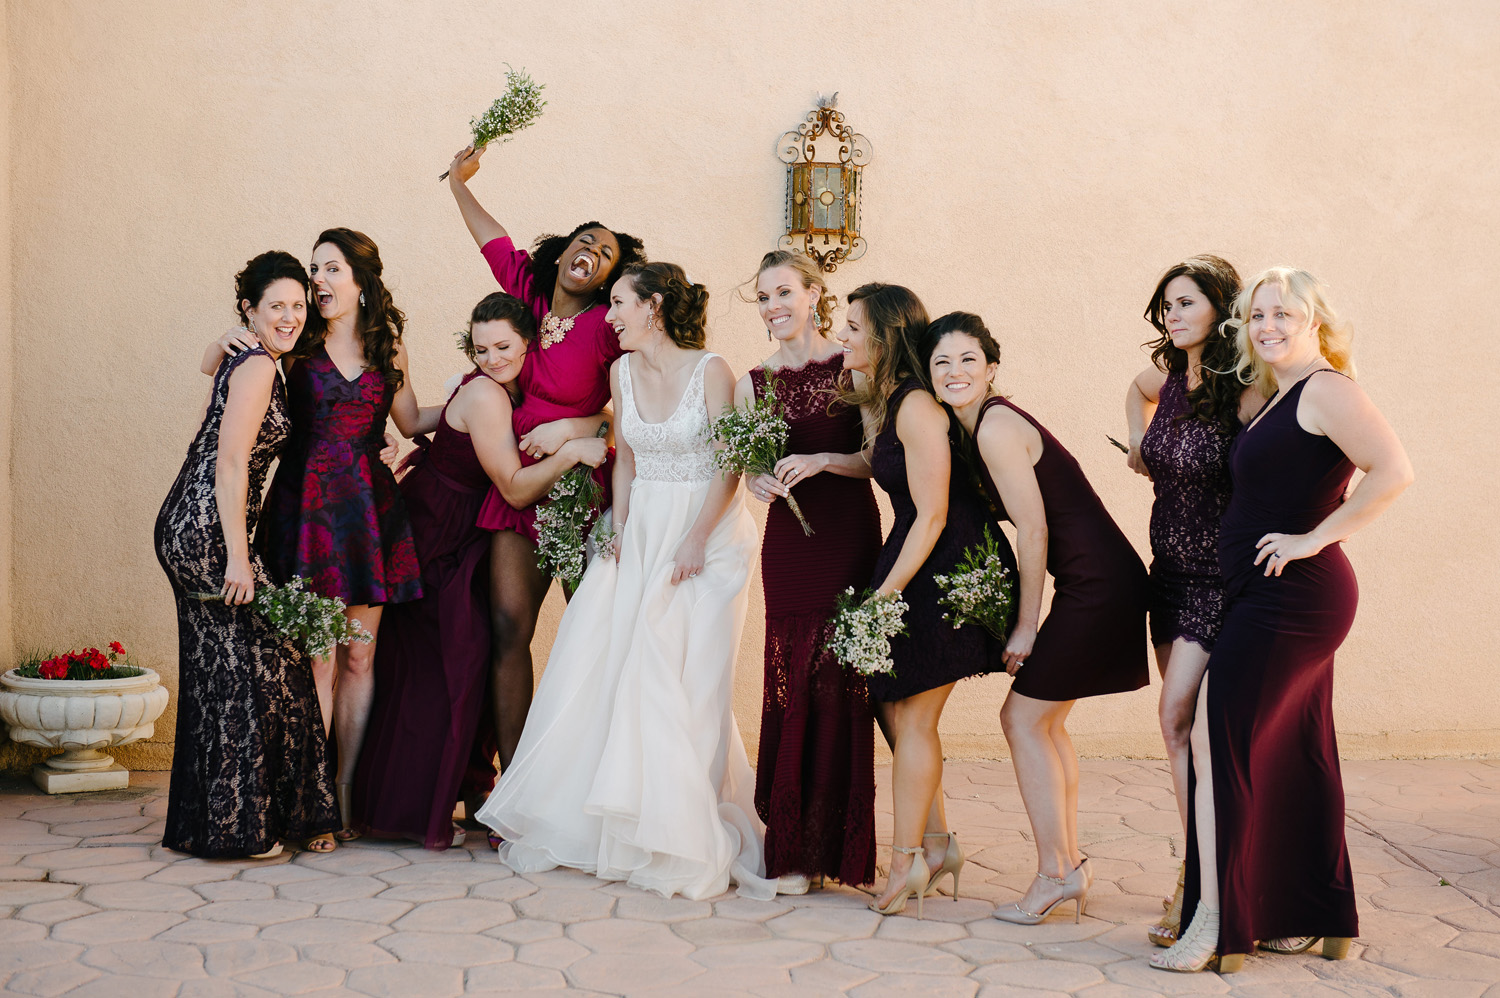 bridesmaids purple dresses laugh with bride